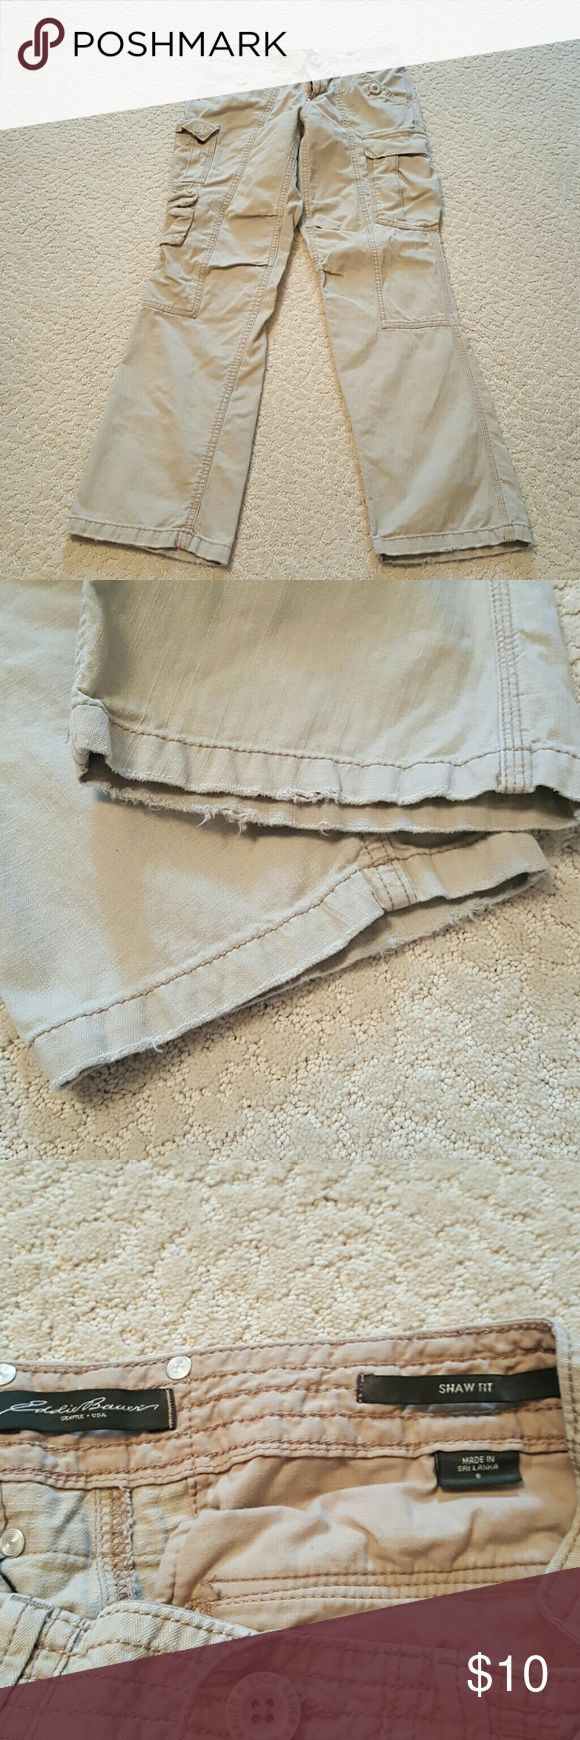 Womens Eddie Bauer cargo pants Womens Eddie Bauer tan cargo pants, size 6, Shaw fit, does show signs of wear at the bottom, slight fraying see pictures. Does fit a litter tighter in the thighs with this cut. In good condition. Eddie Bauer Pants Trousers